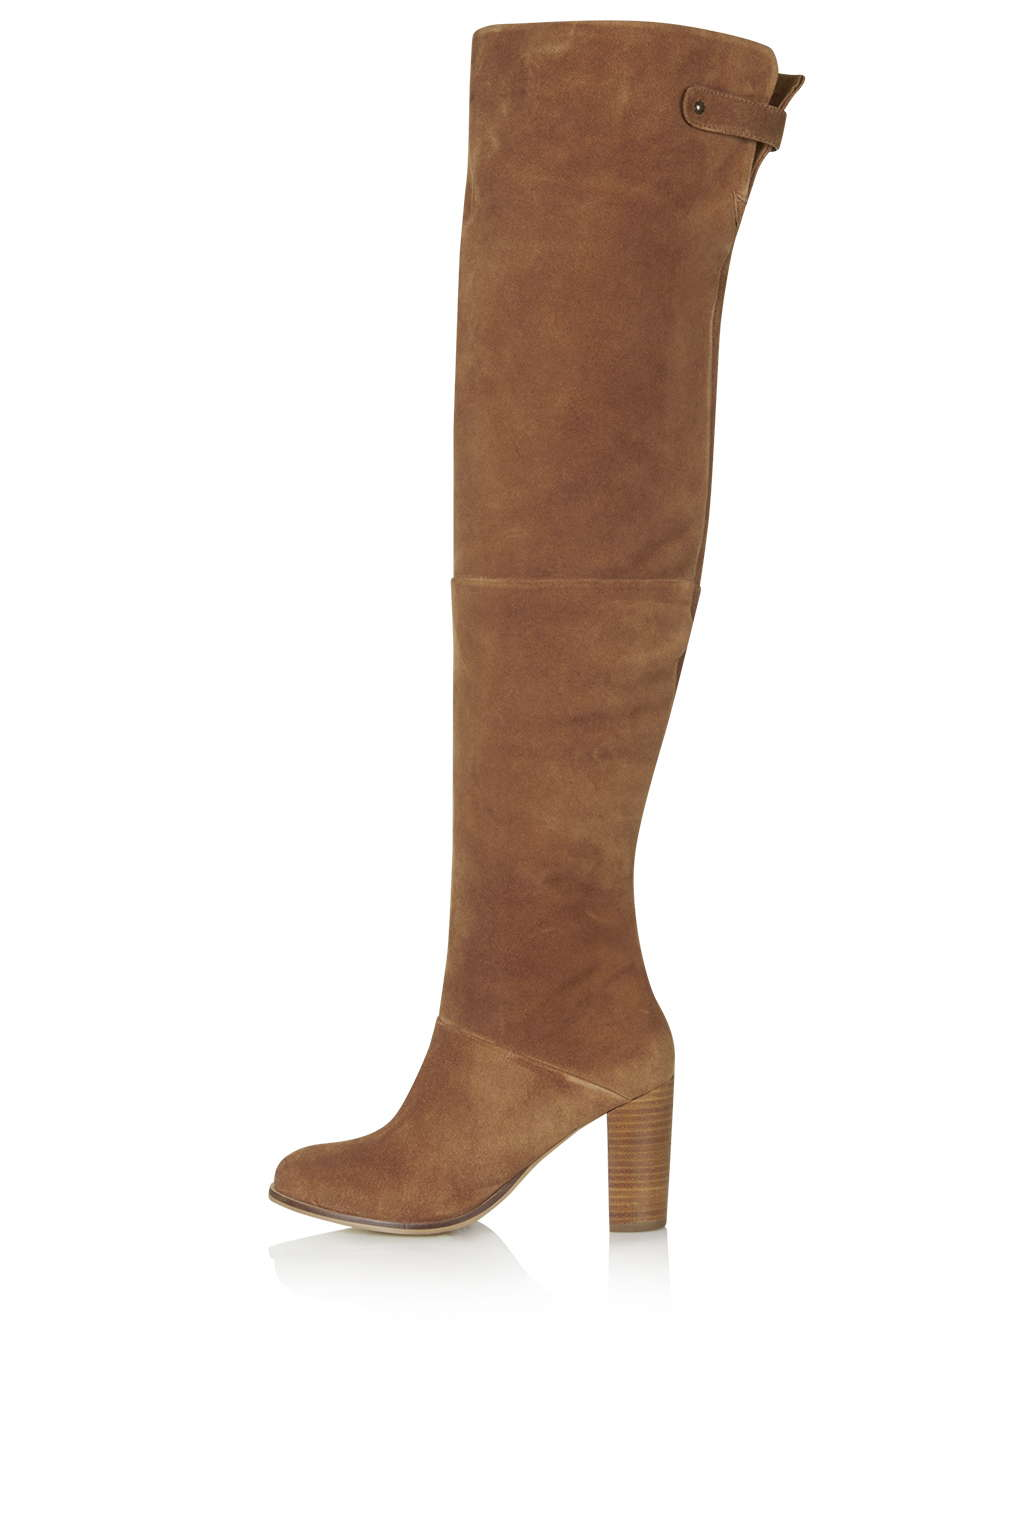 Topshop_BELL-Thigh-High-Boots